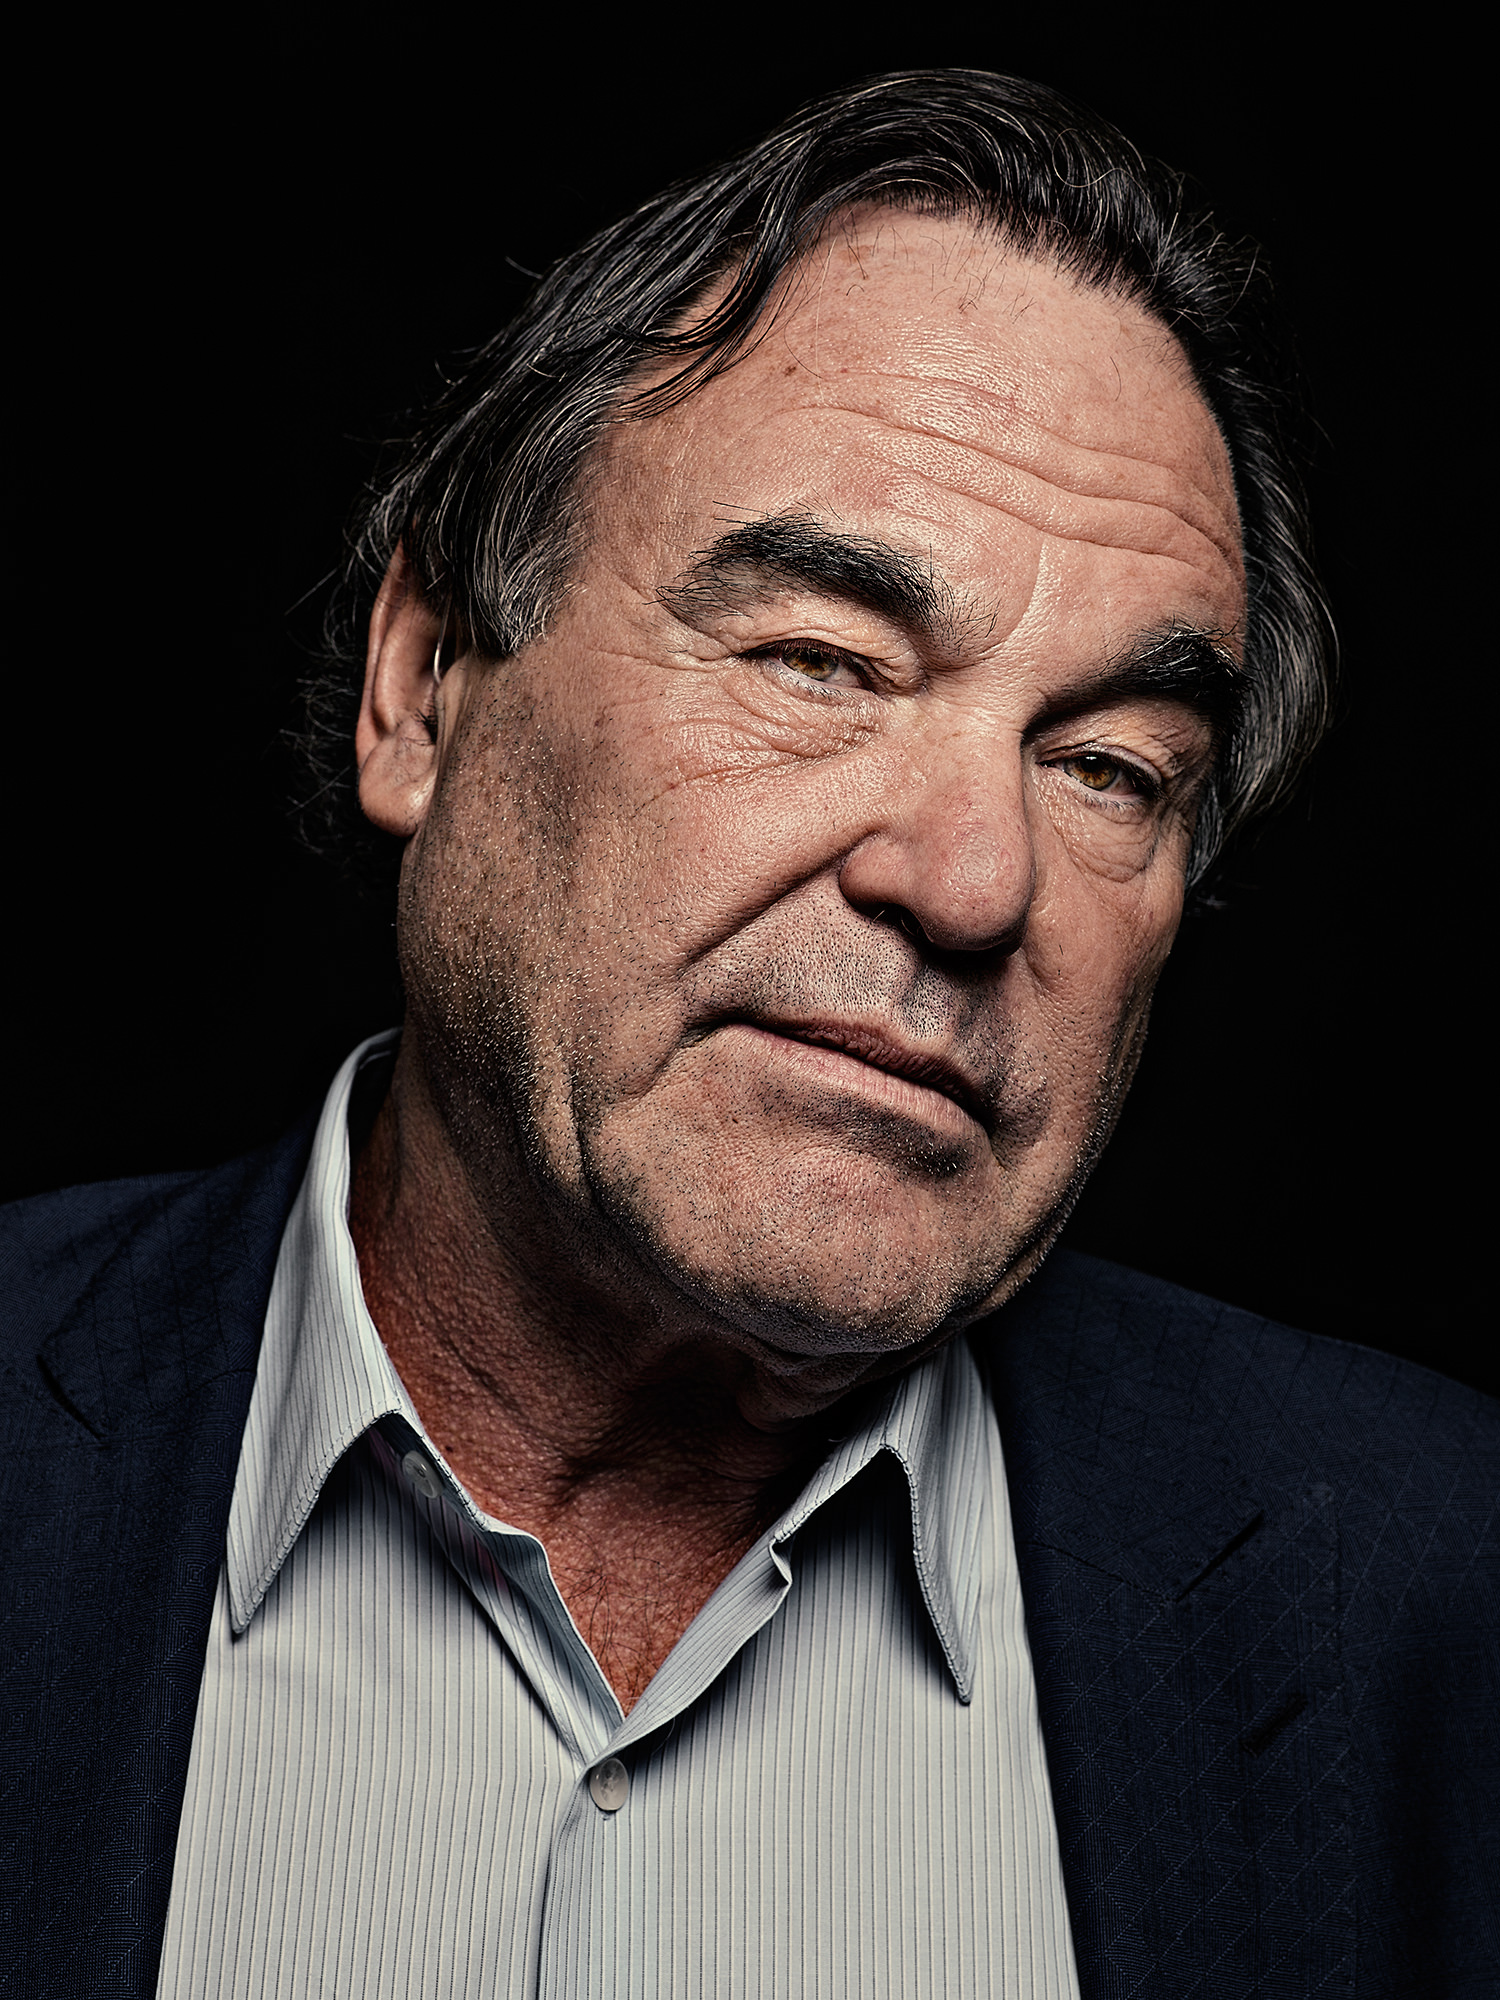 Oliver Stone - American Film Director & Producer